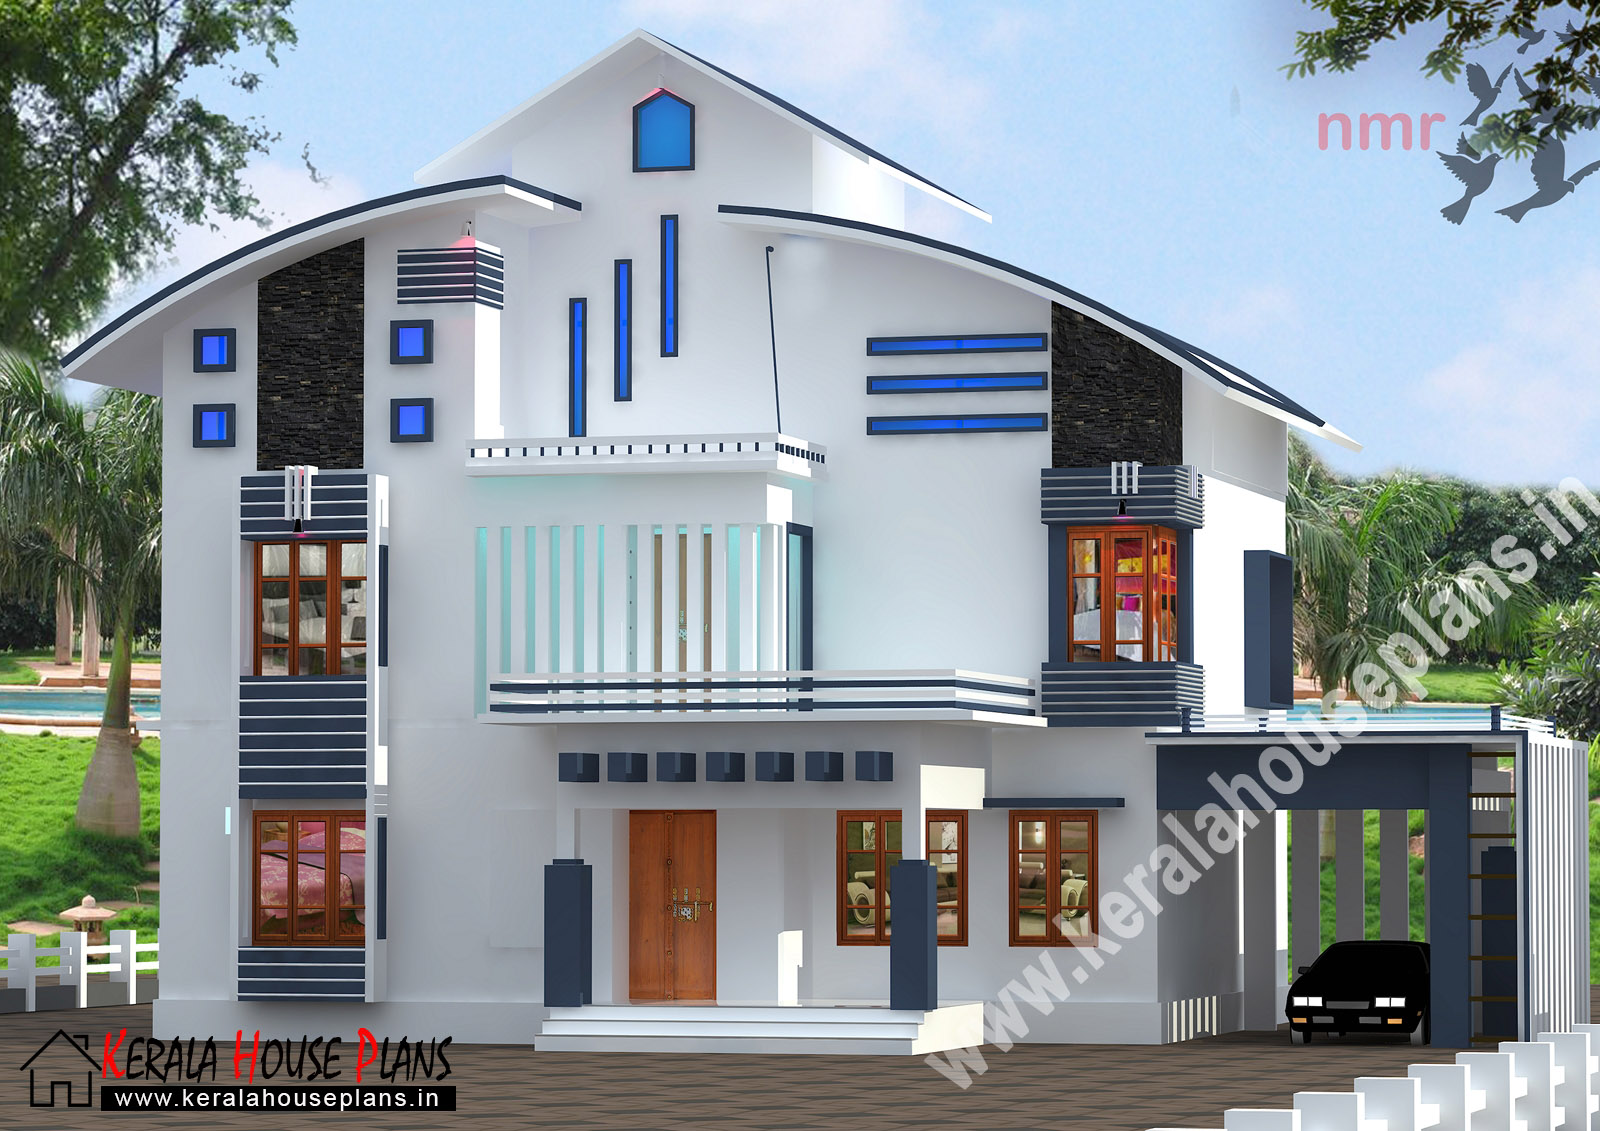 Kerala house plans and designs for Kerala home plans